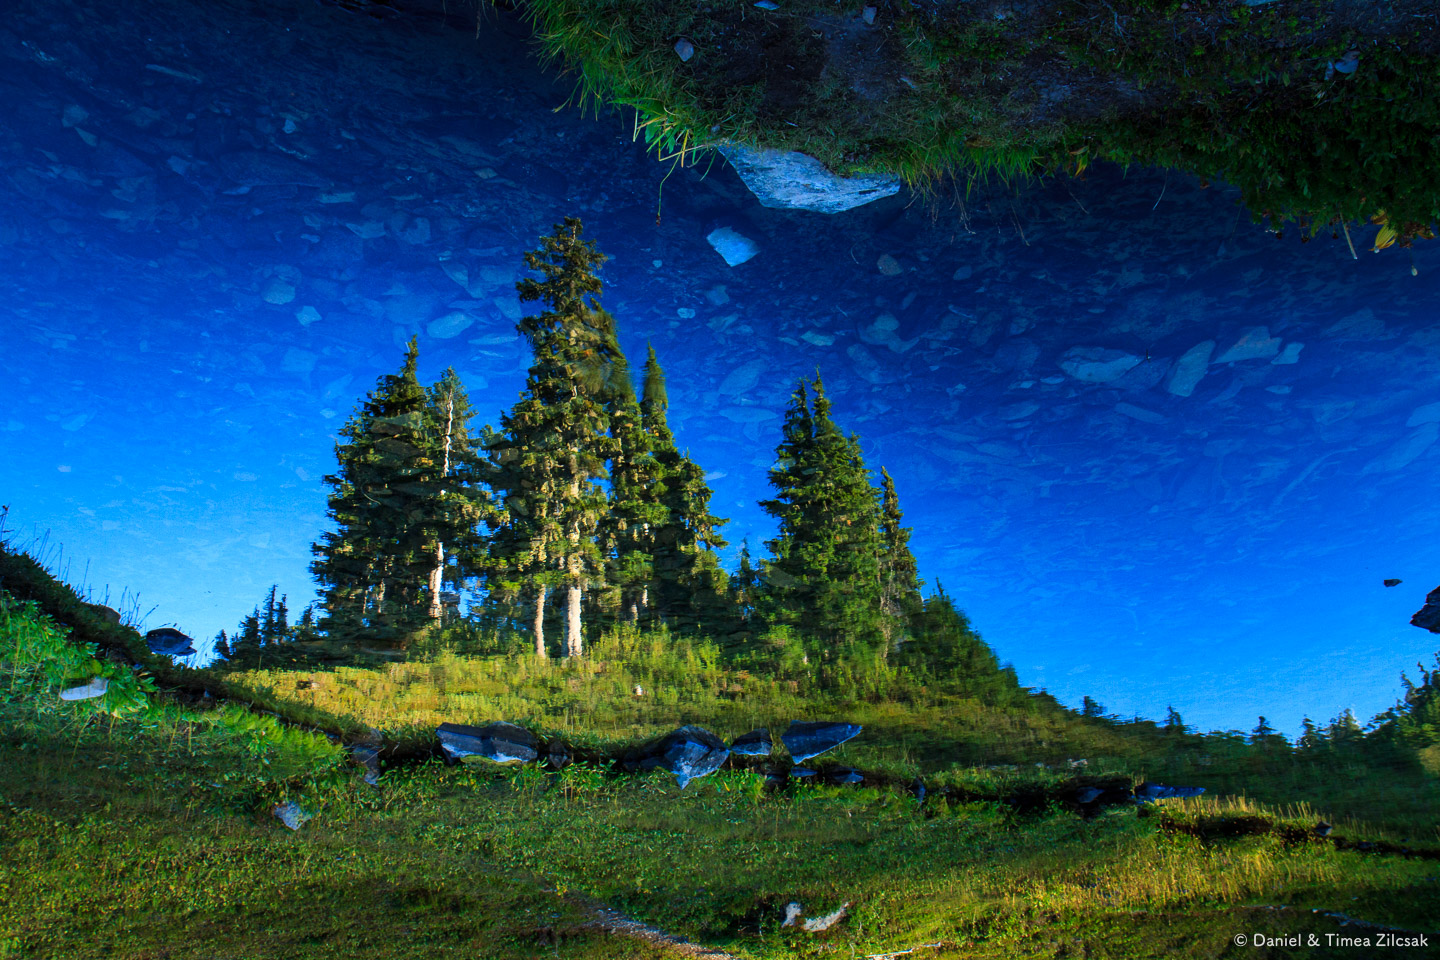 Heart Lake producing a fine upside down reflection, Backpacking the High Divide - Seven Lakes Basin Loop, Olympic National Park